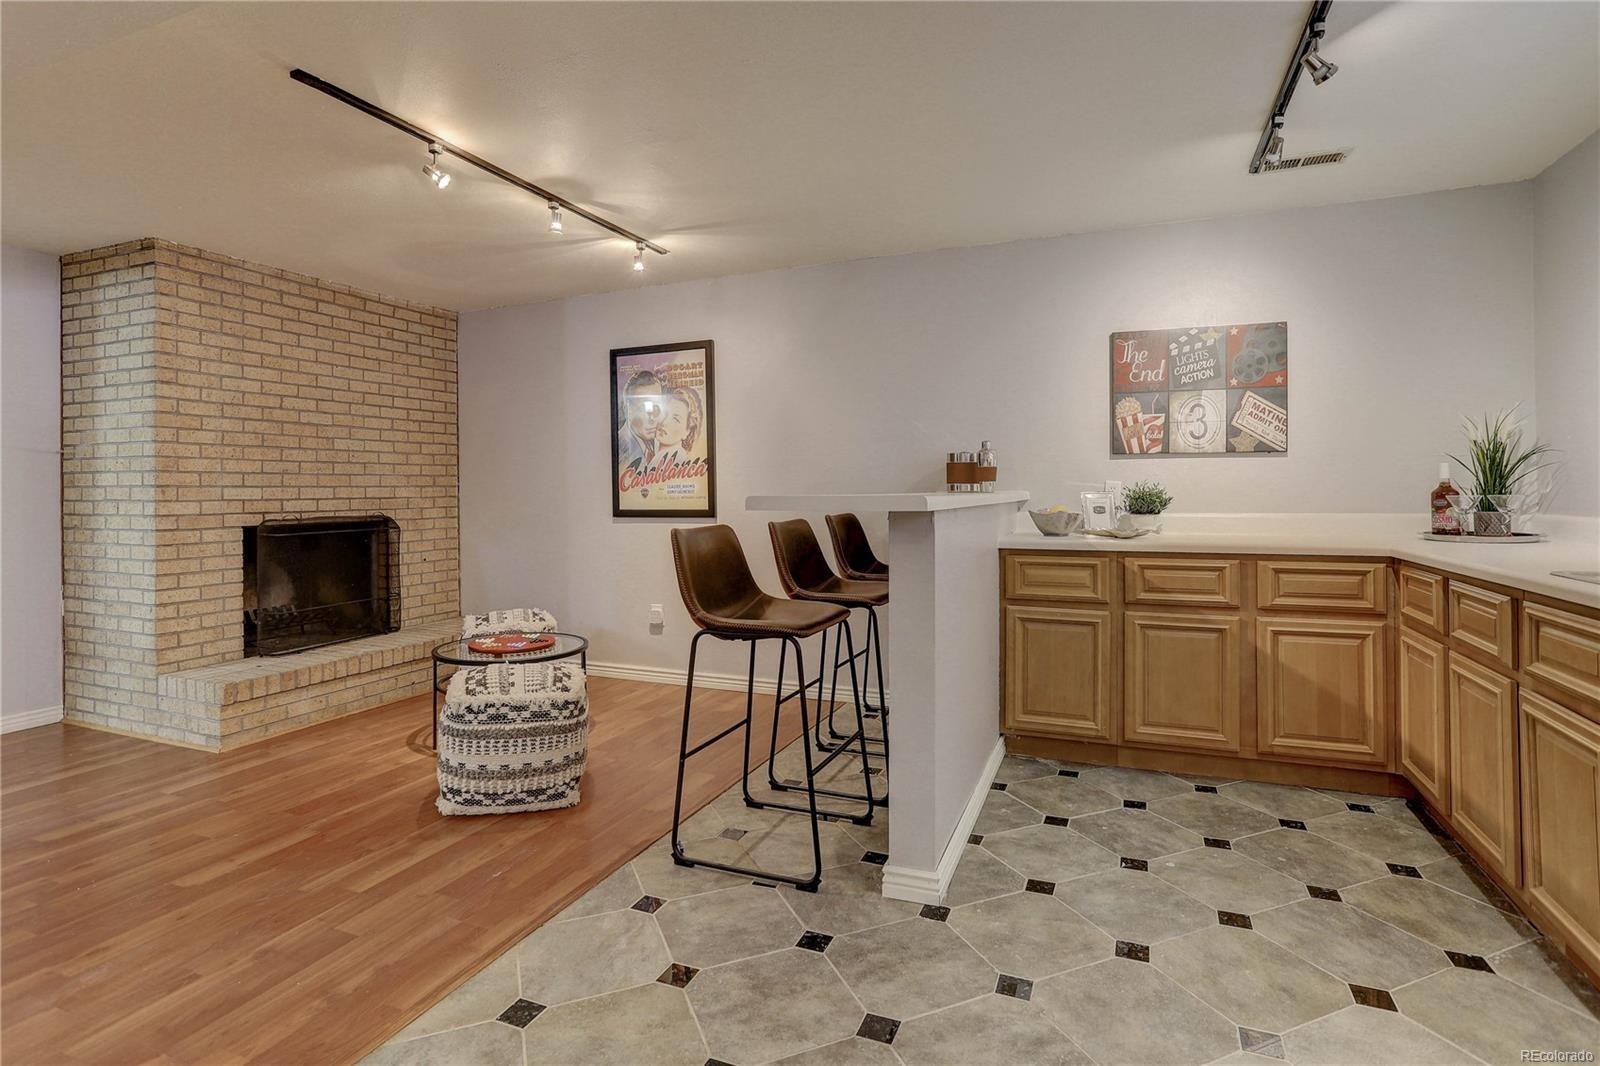 MLS# 2968148 - 26 - 2931 S Downing Street, Englewood, CO 80113